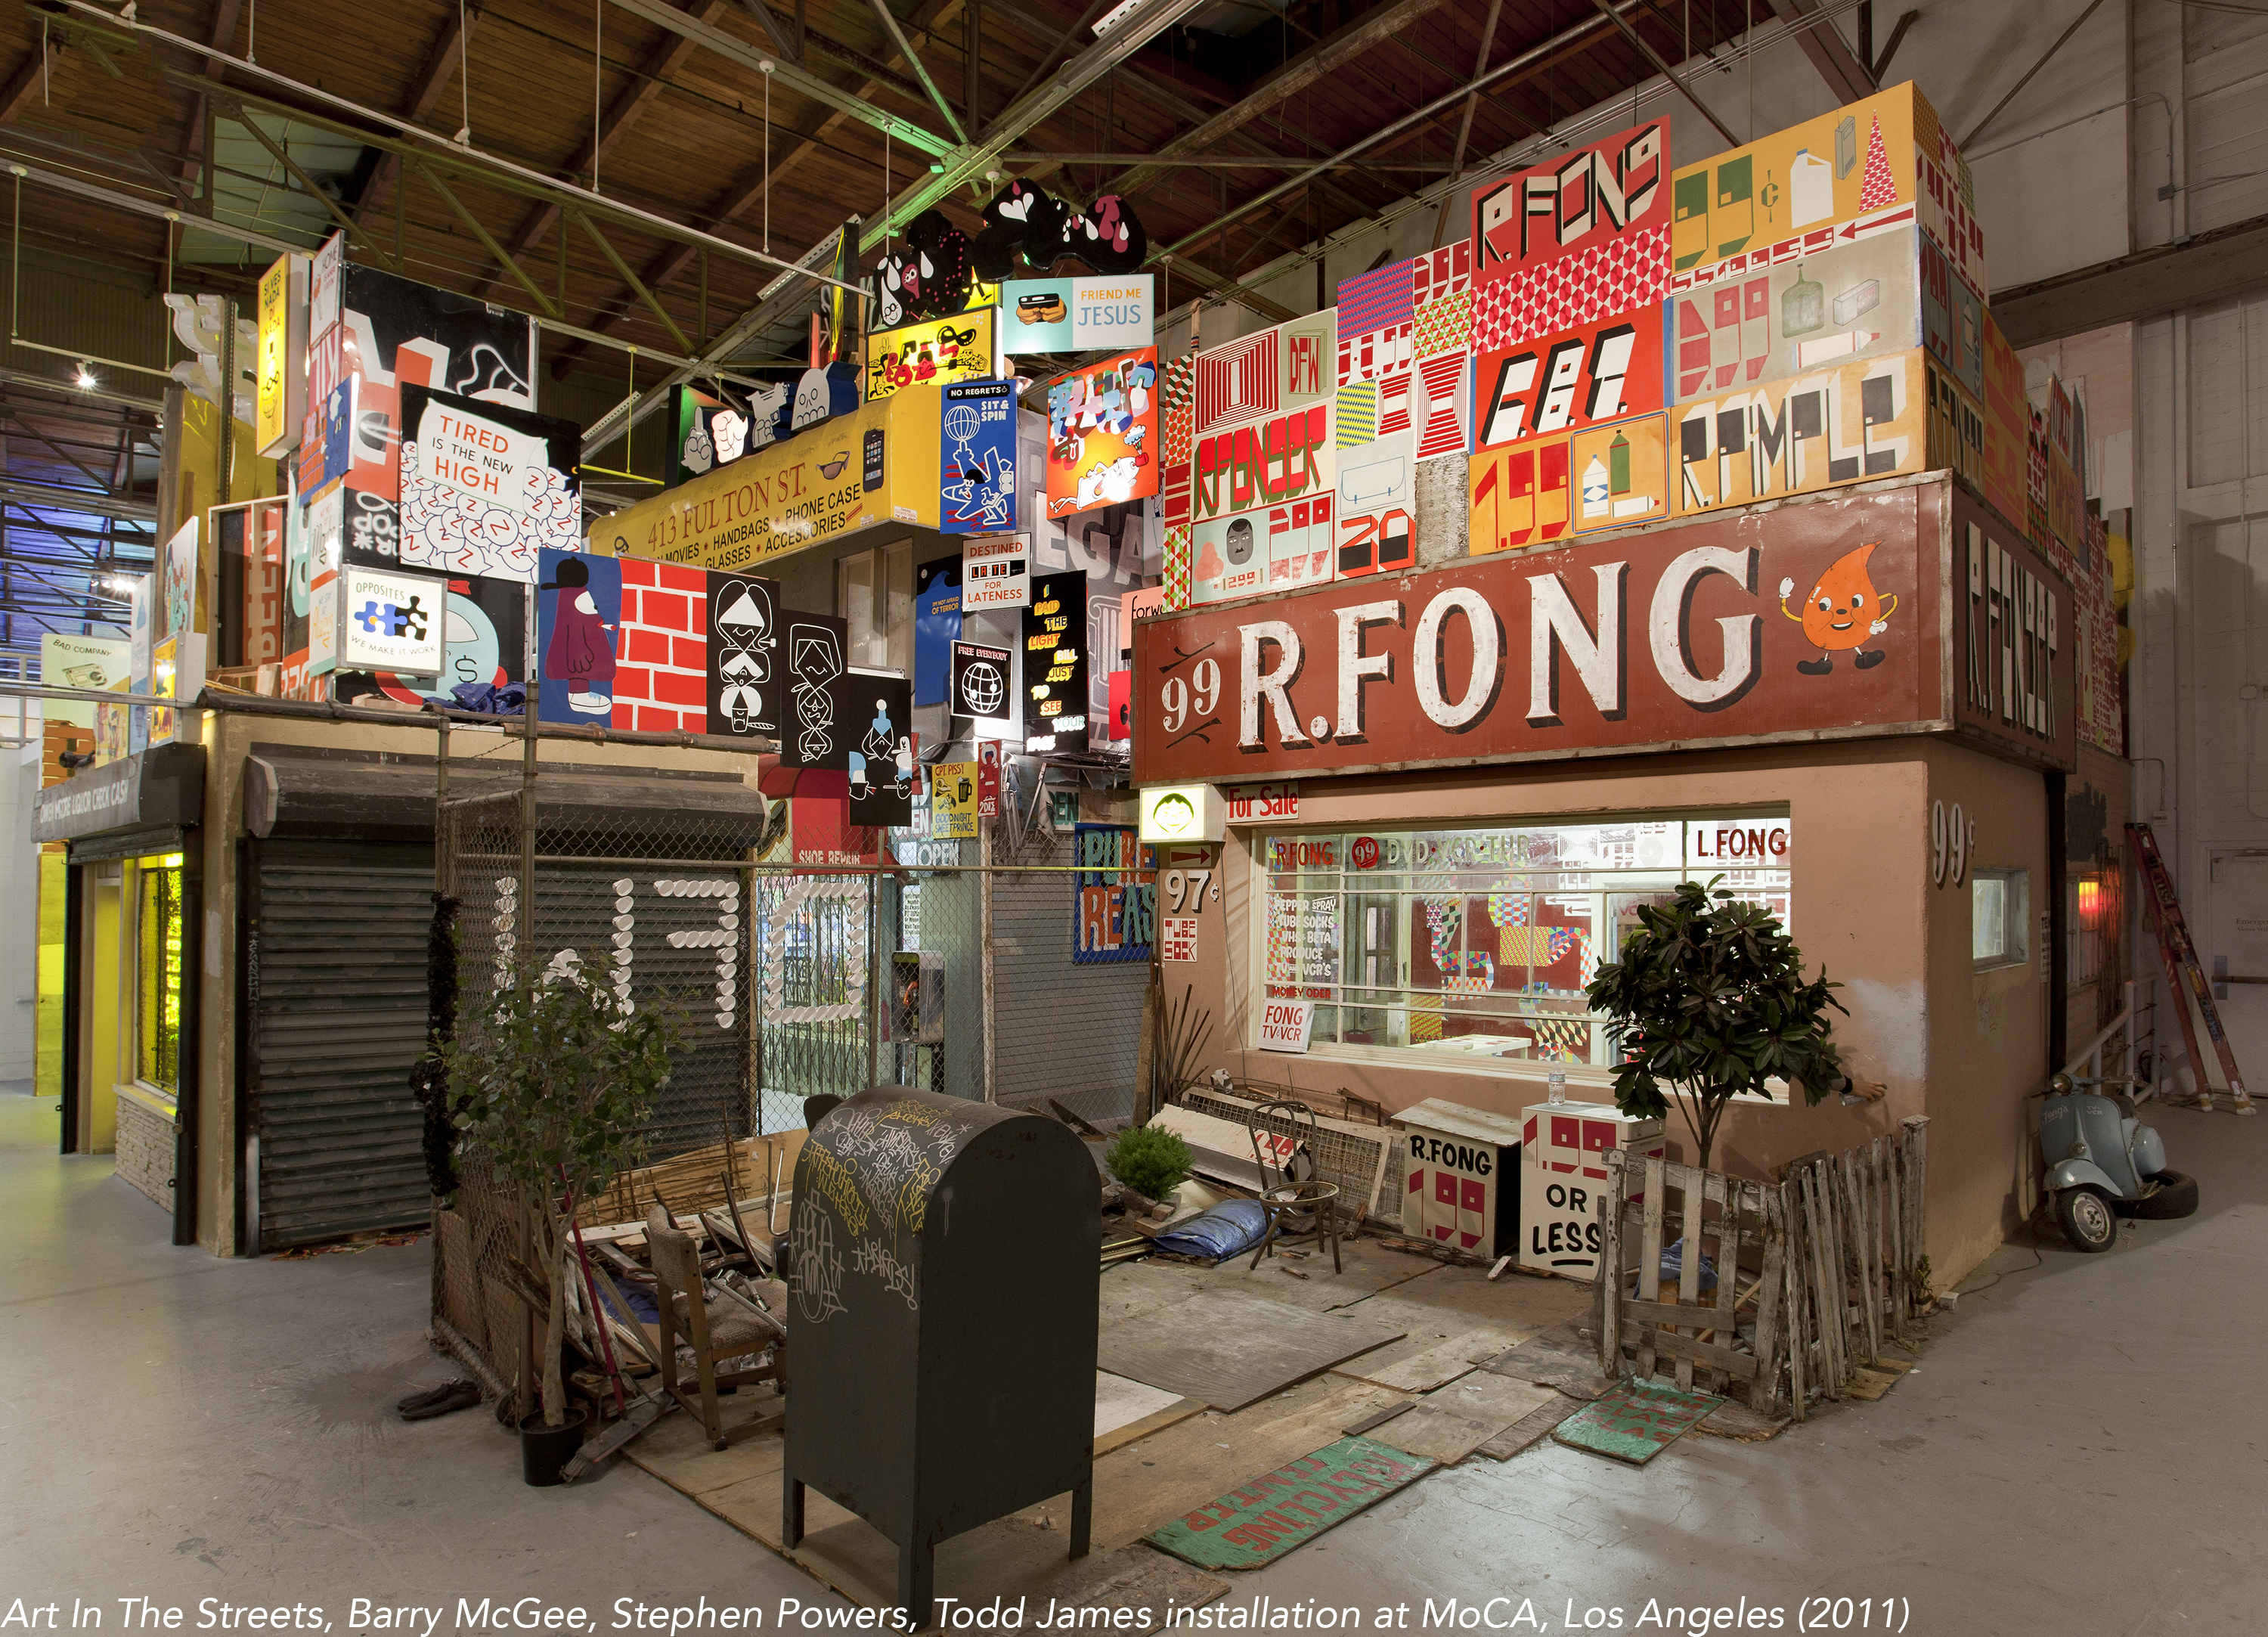 Art In The Streets, Barry McGee, Stephen Powers, Todd James installation at MoCA, Los Angeles (2011)